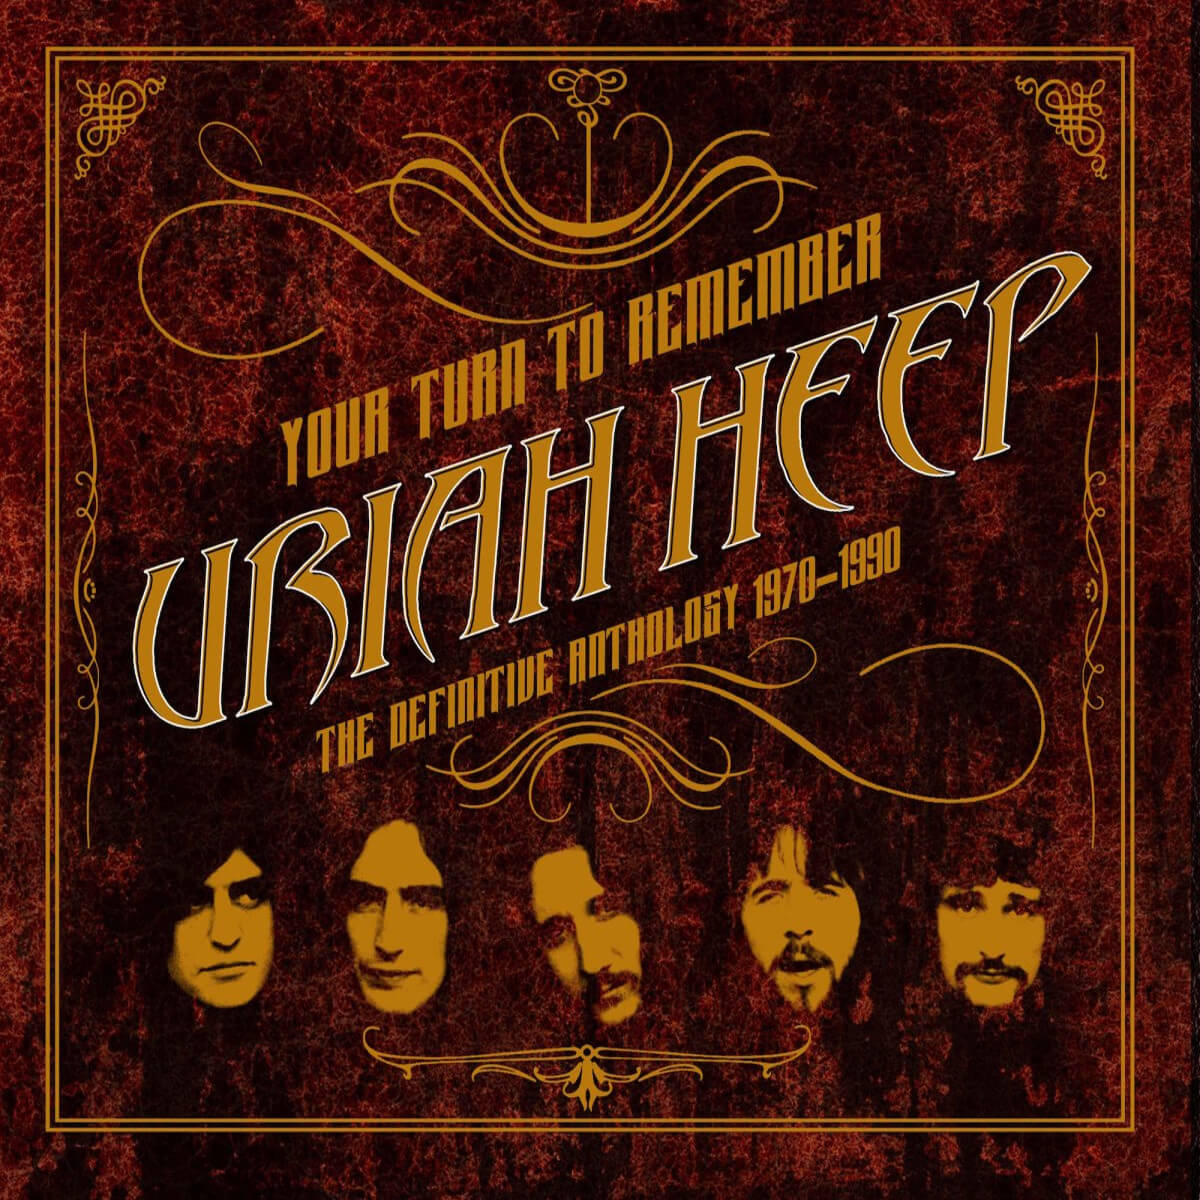 Uriah Heep - Your turn to remember - Vinil Cover